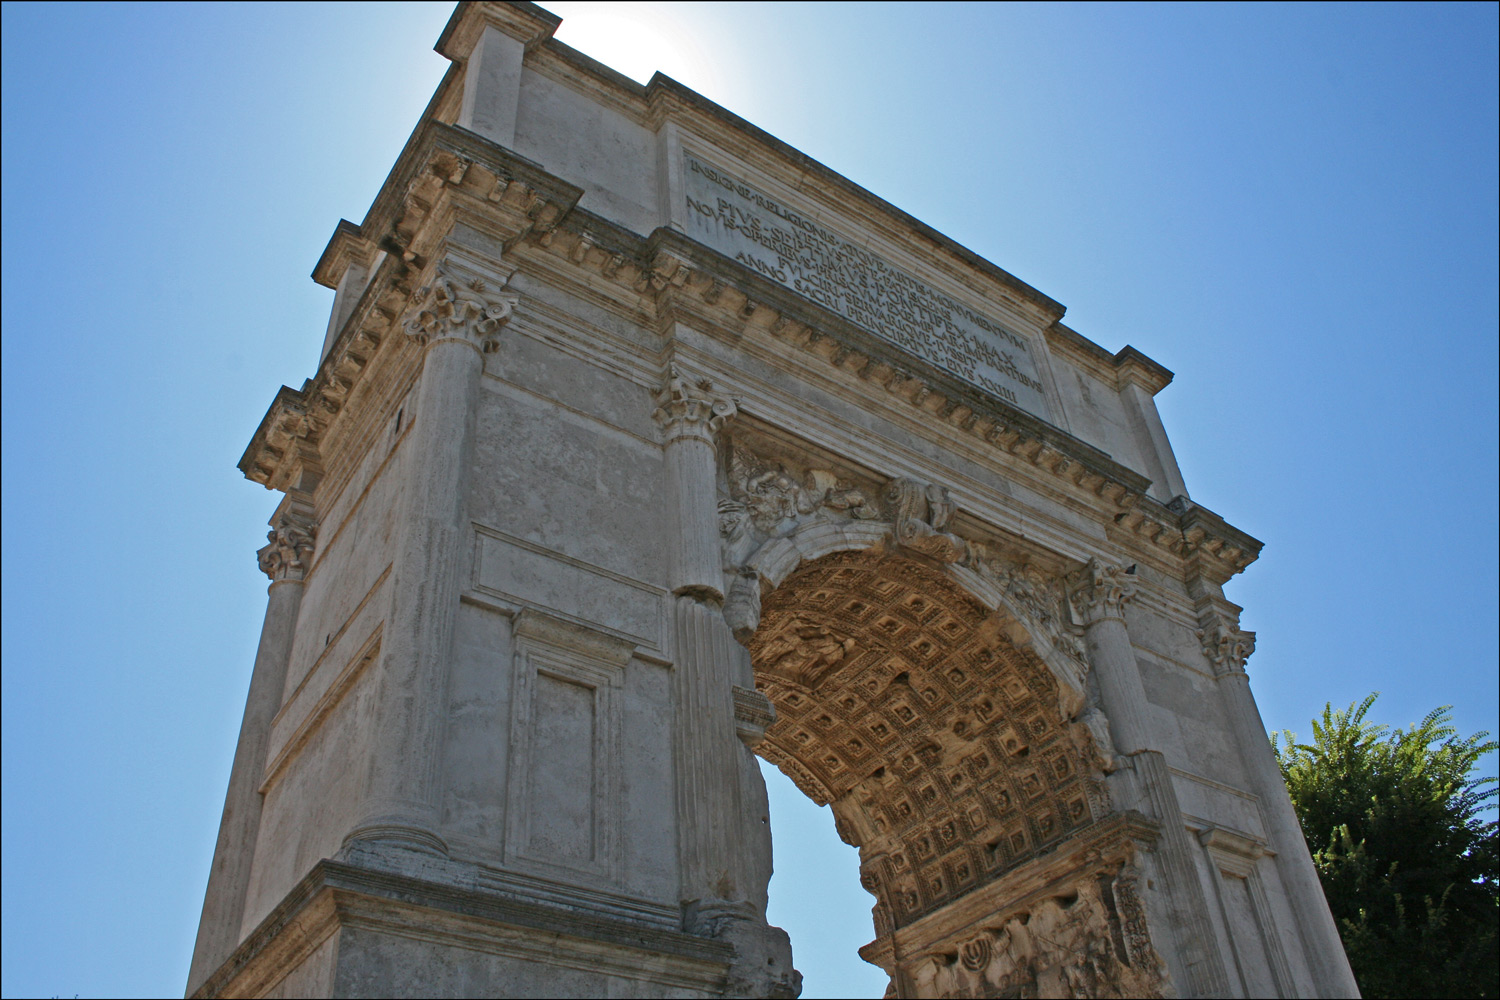 Deatil of the Arch of Titus